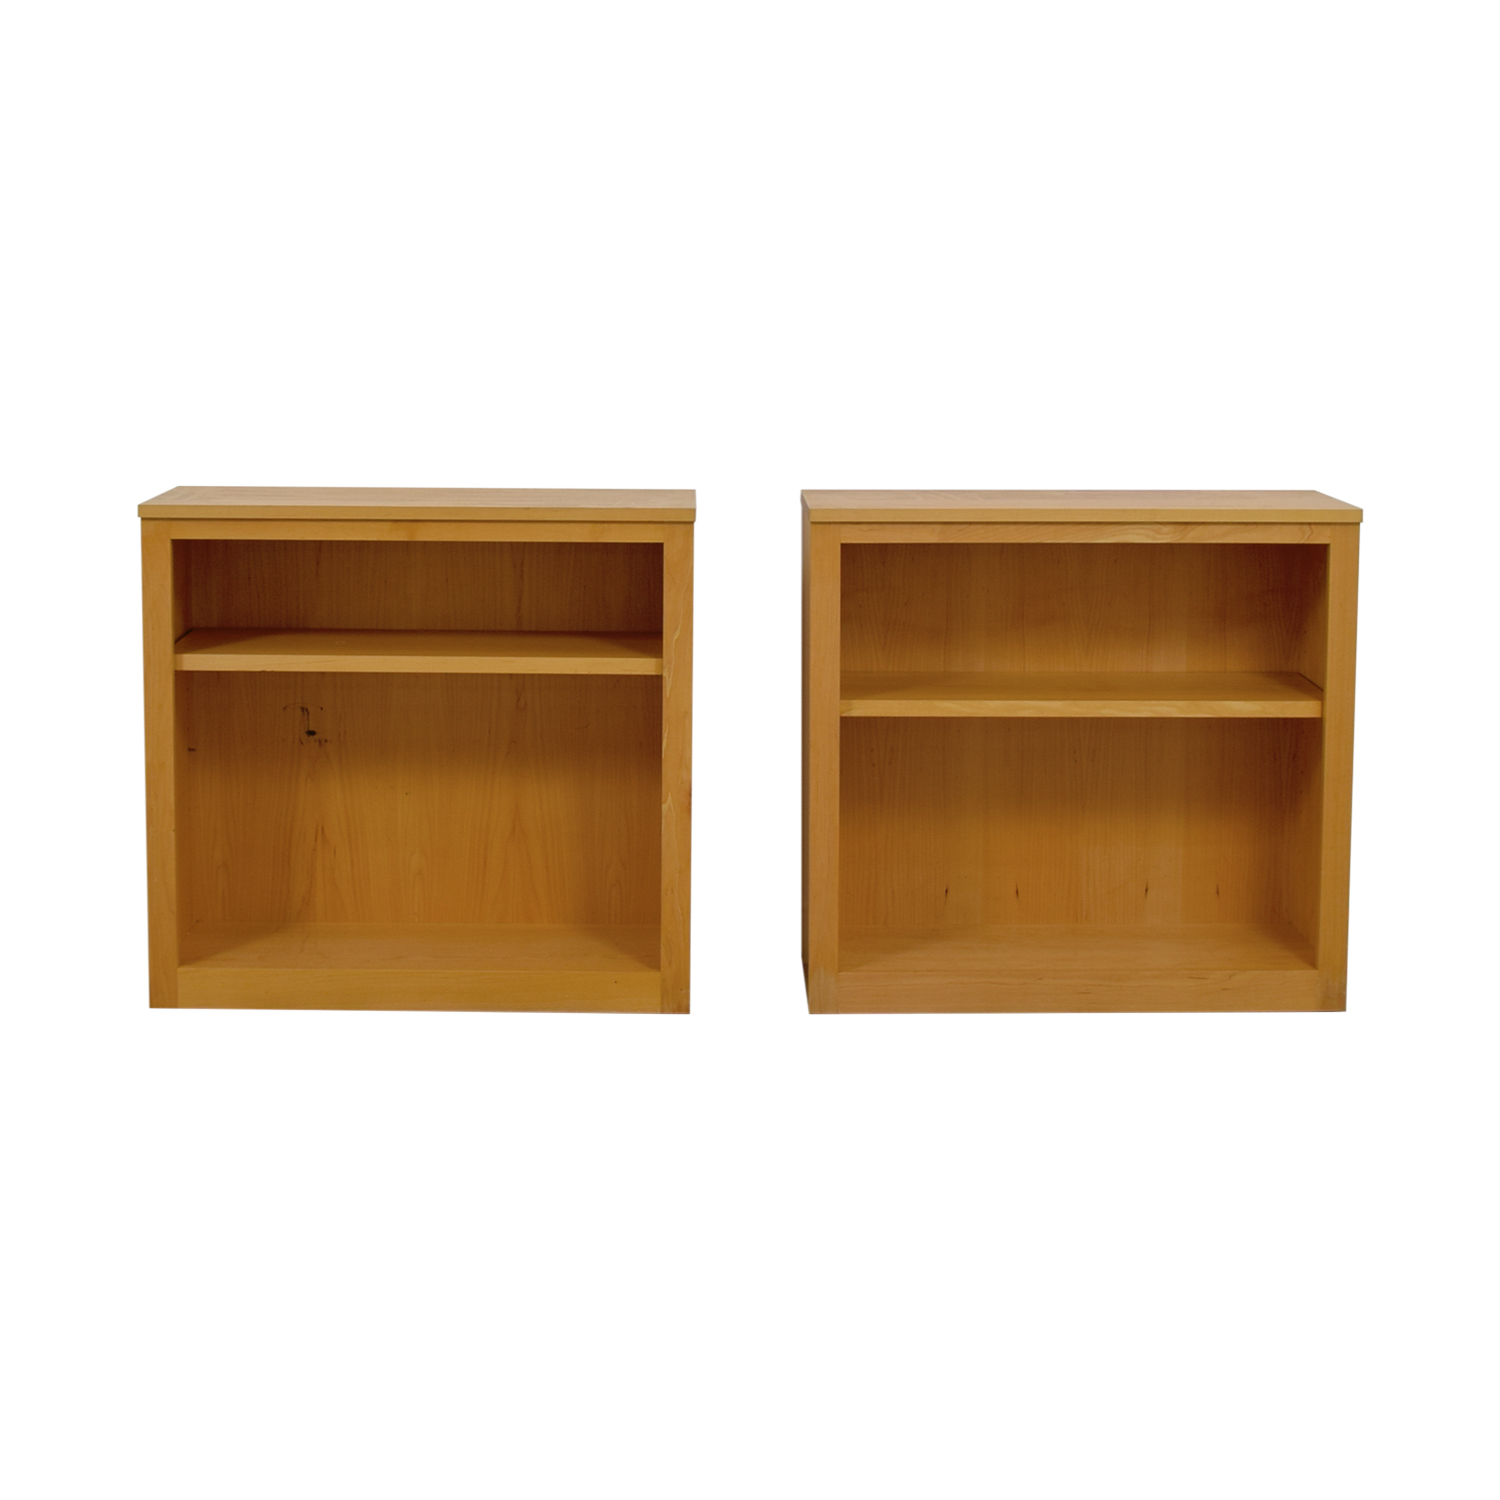 Room & Board Room & Board Woodwind Bookshelves Bookcases & Shelving